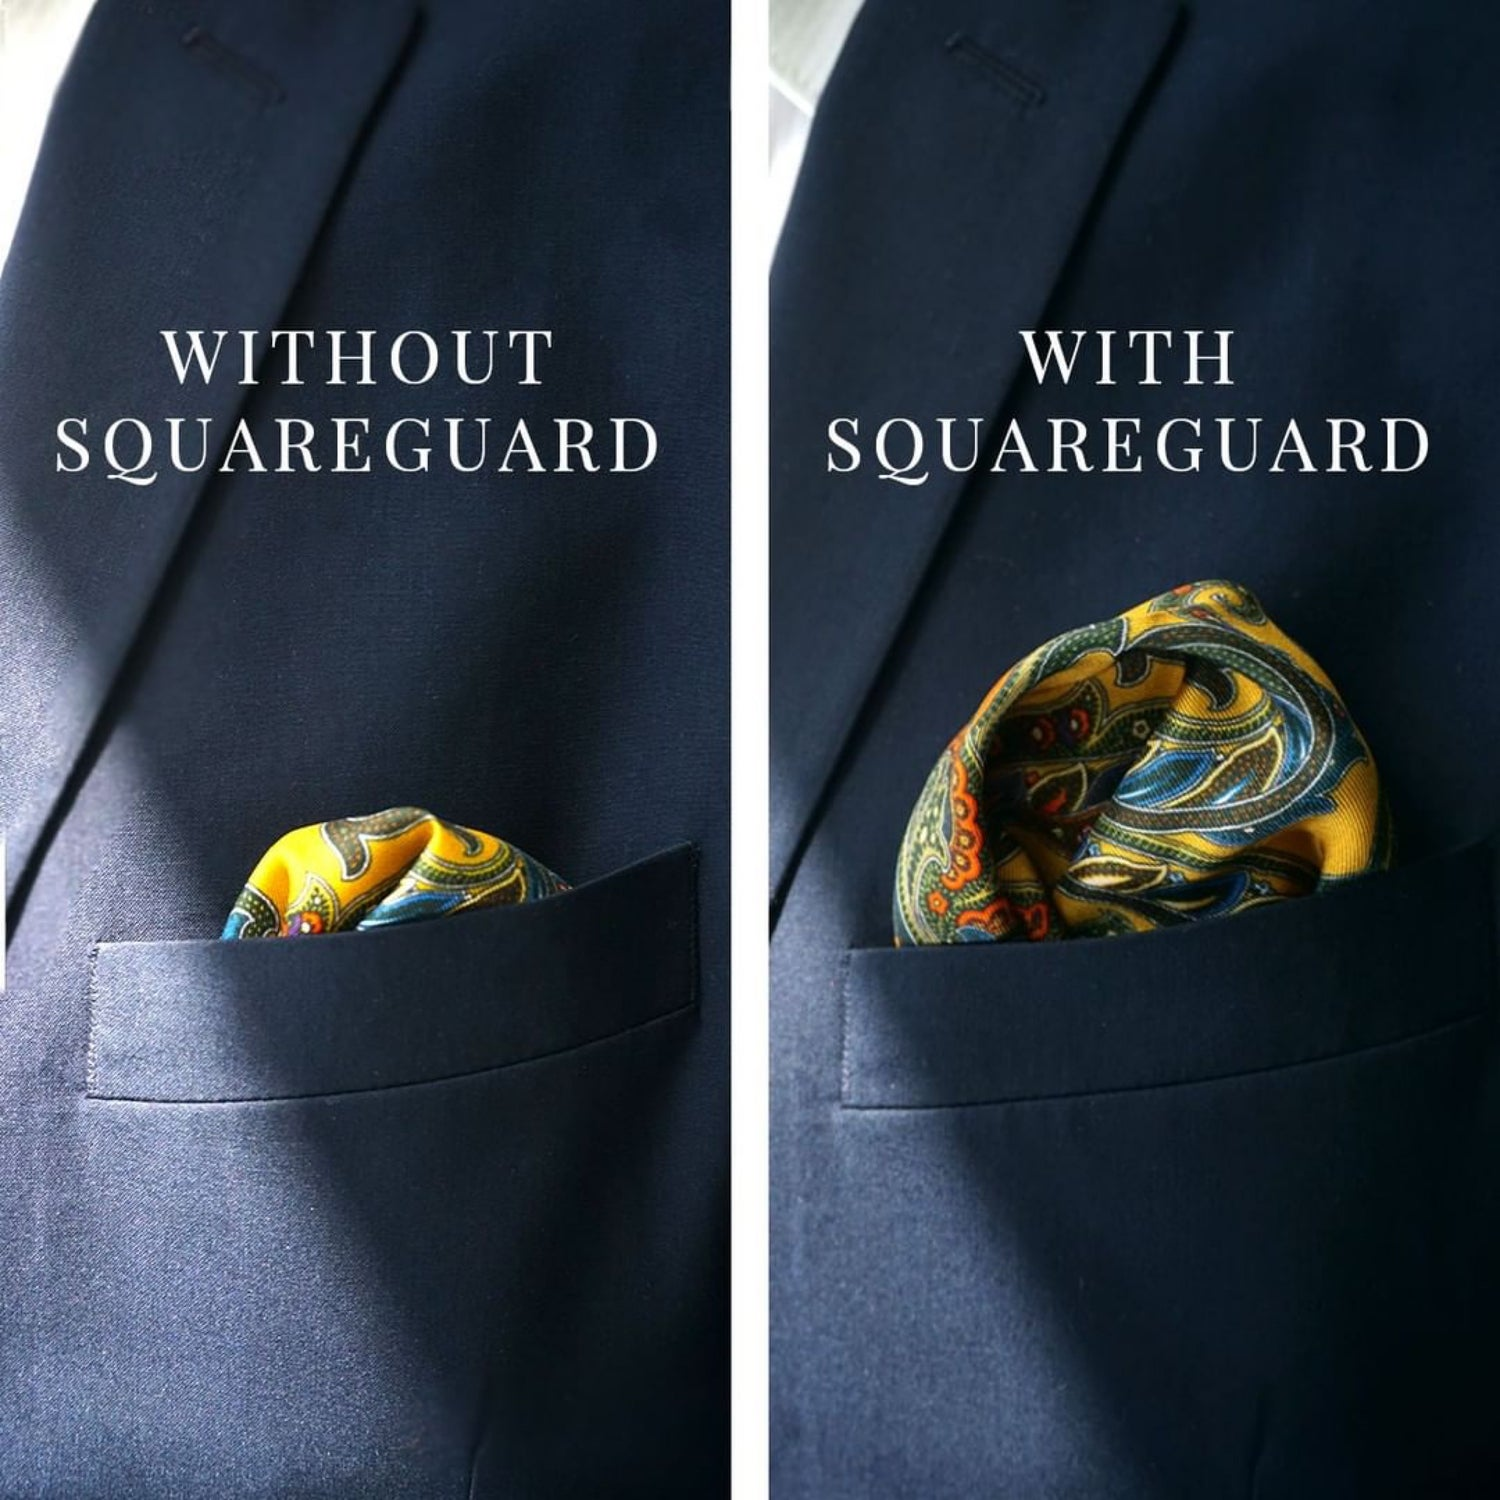 Image of Pocket Square Guard